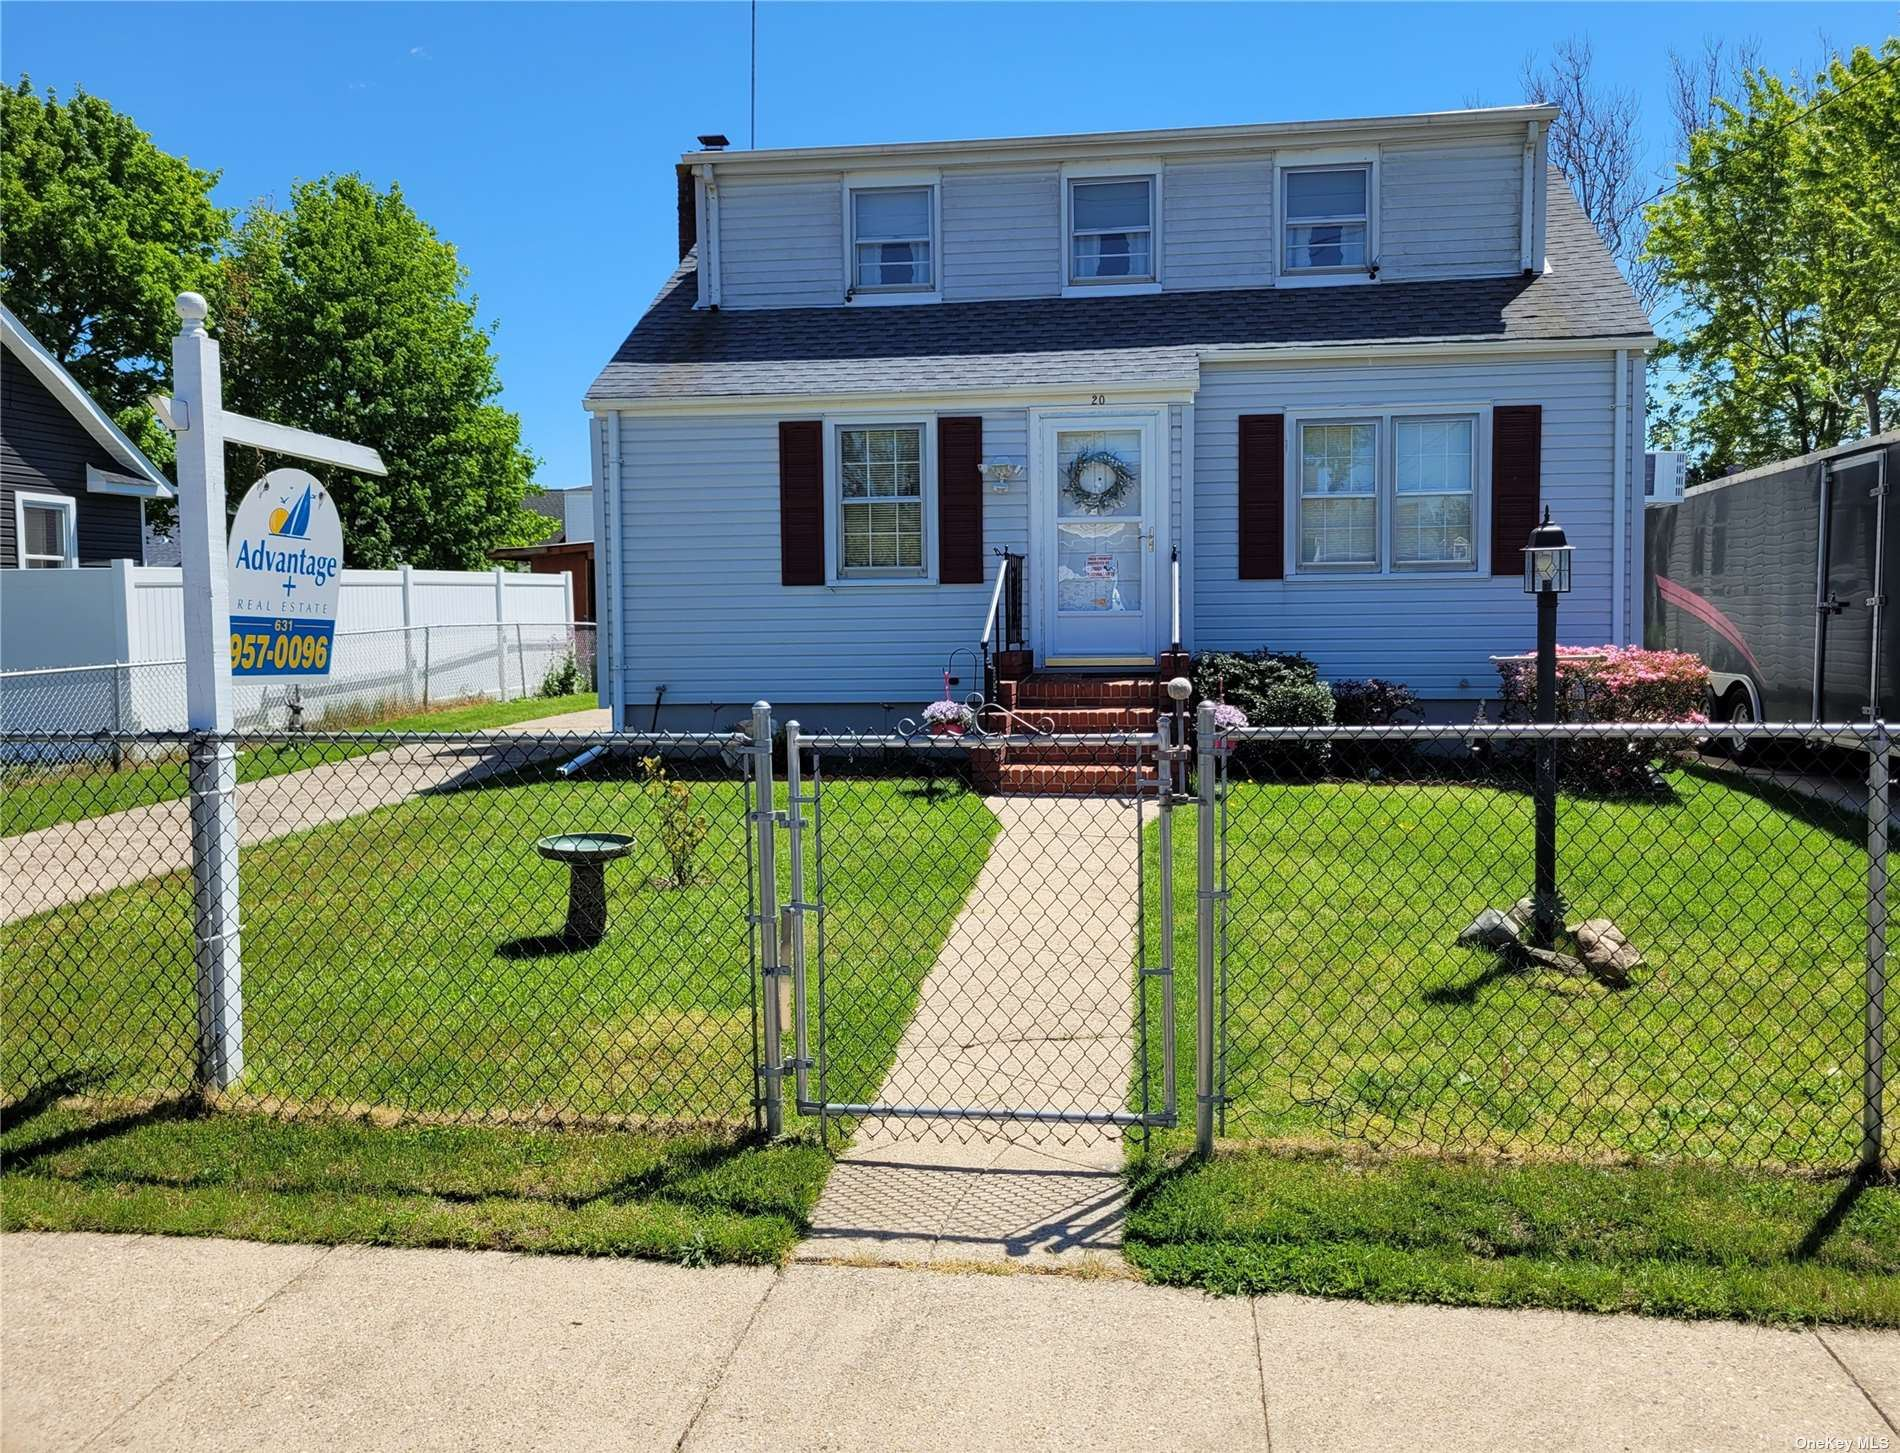 20 Lincoln Street, Copiague, NY 11726 - MLS#: 3291193